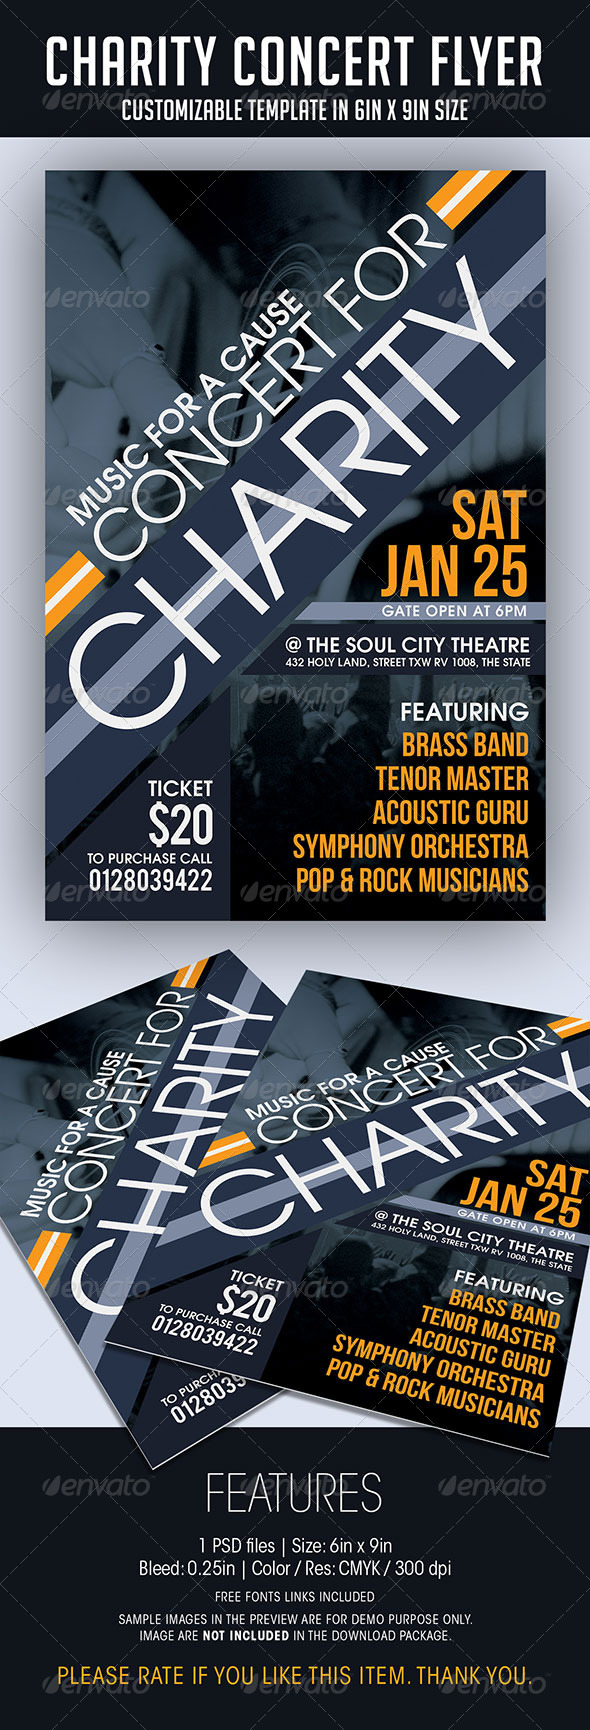 Charity Concert Flyer - Concerts Events